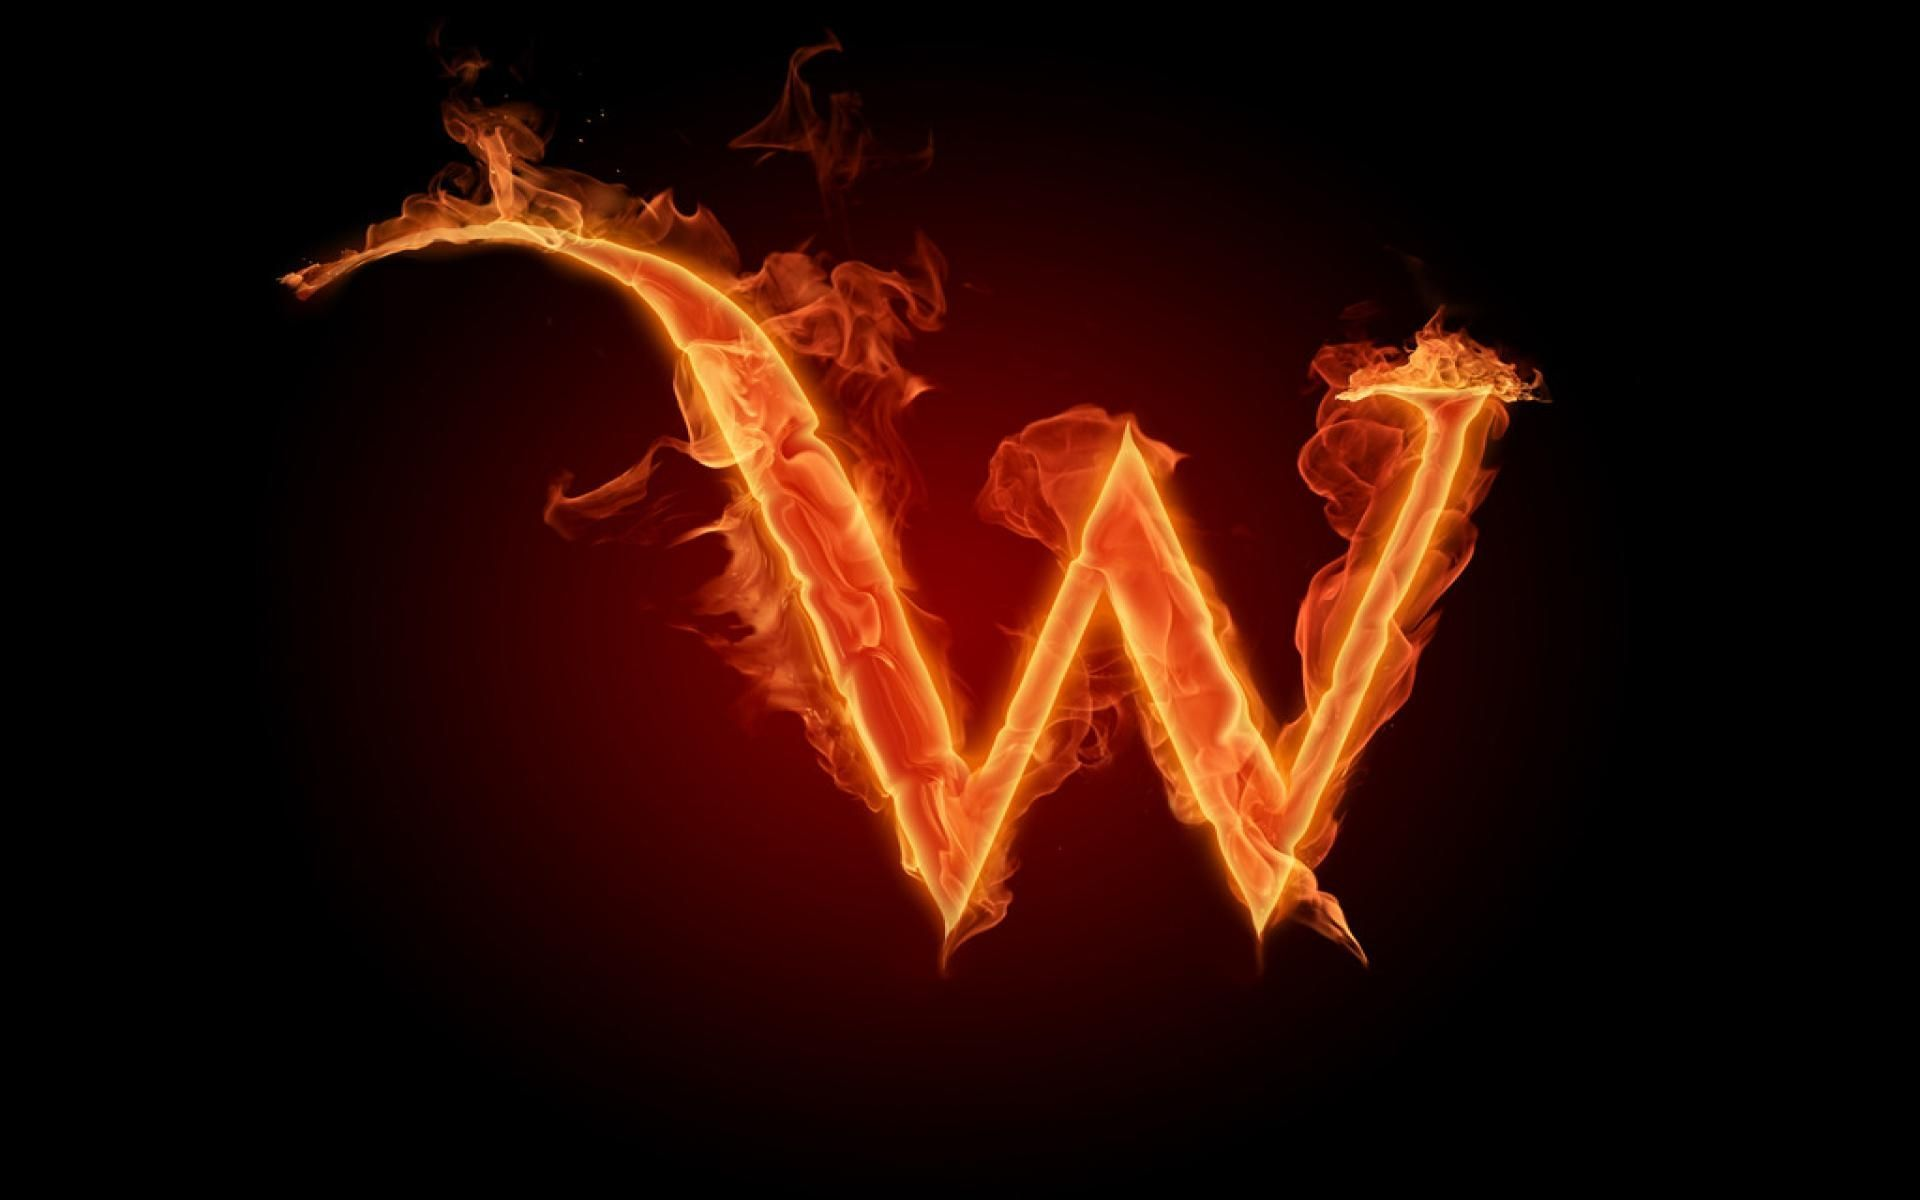 1920x1200 Burning Fire Letter W Wallpaper   Letter w, Picture letters ...